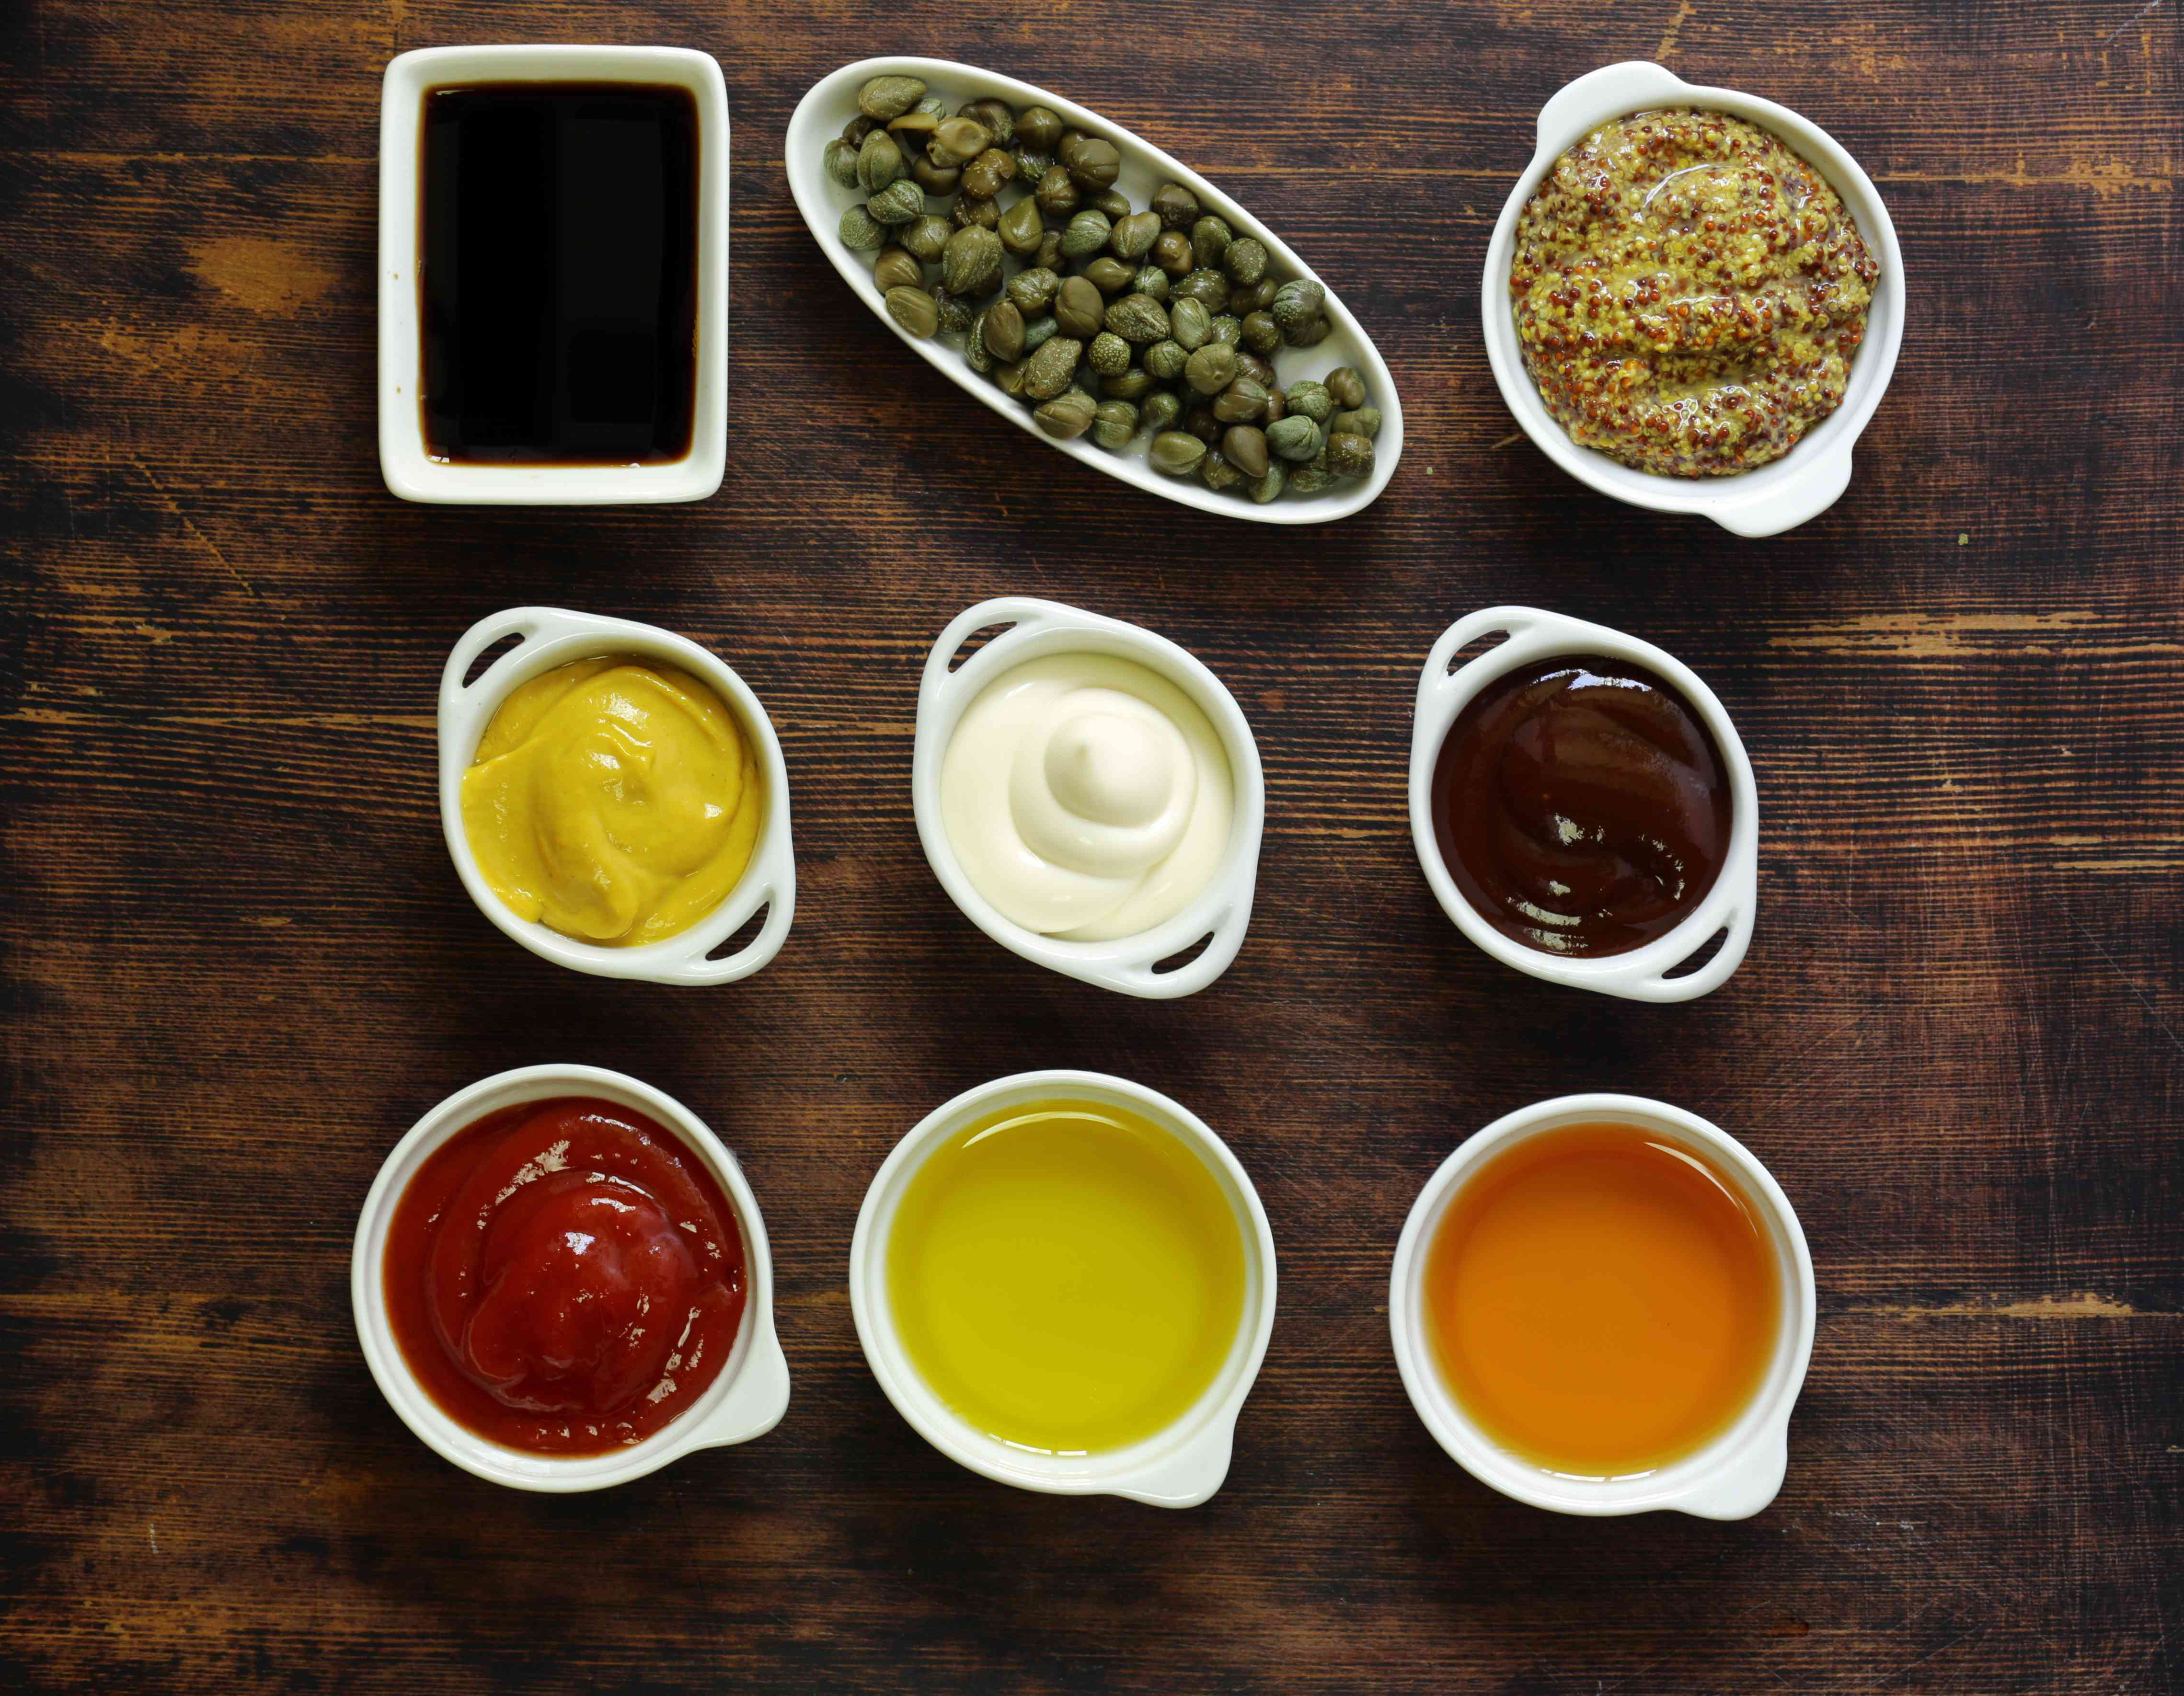 Different types of sauces and oils in bowls